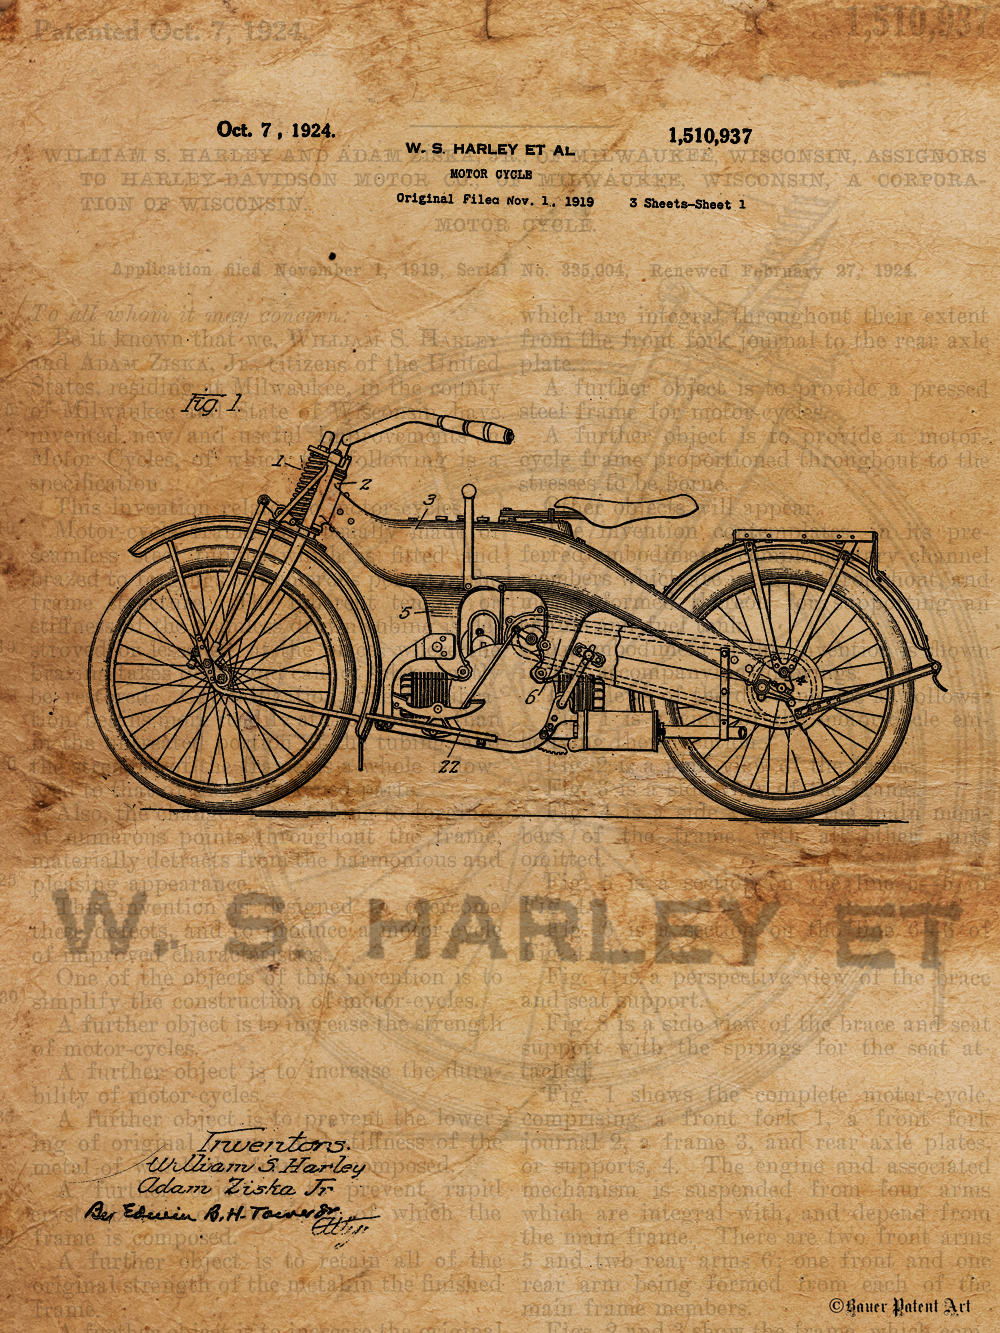 1000x1333 Vintage Patent Drawing Art Of Old Harley Davidson Motorcycle